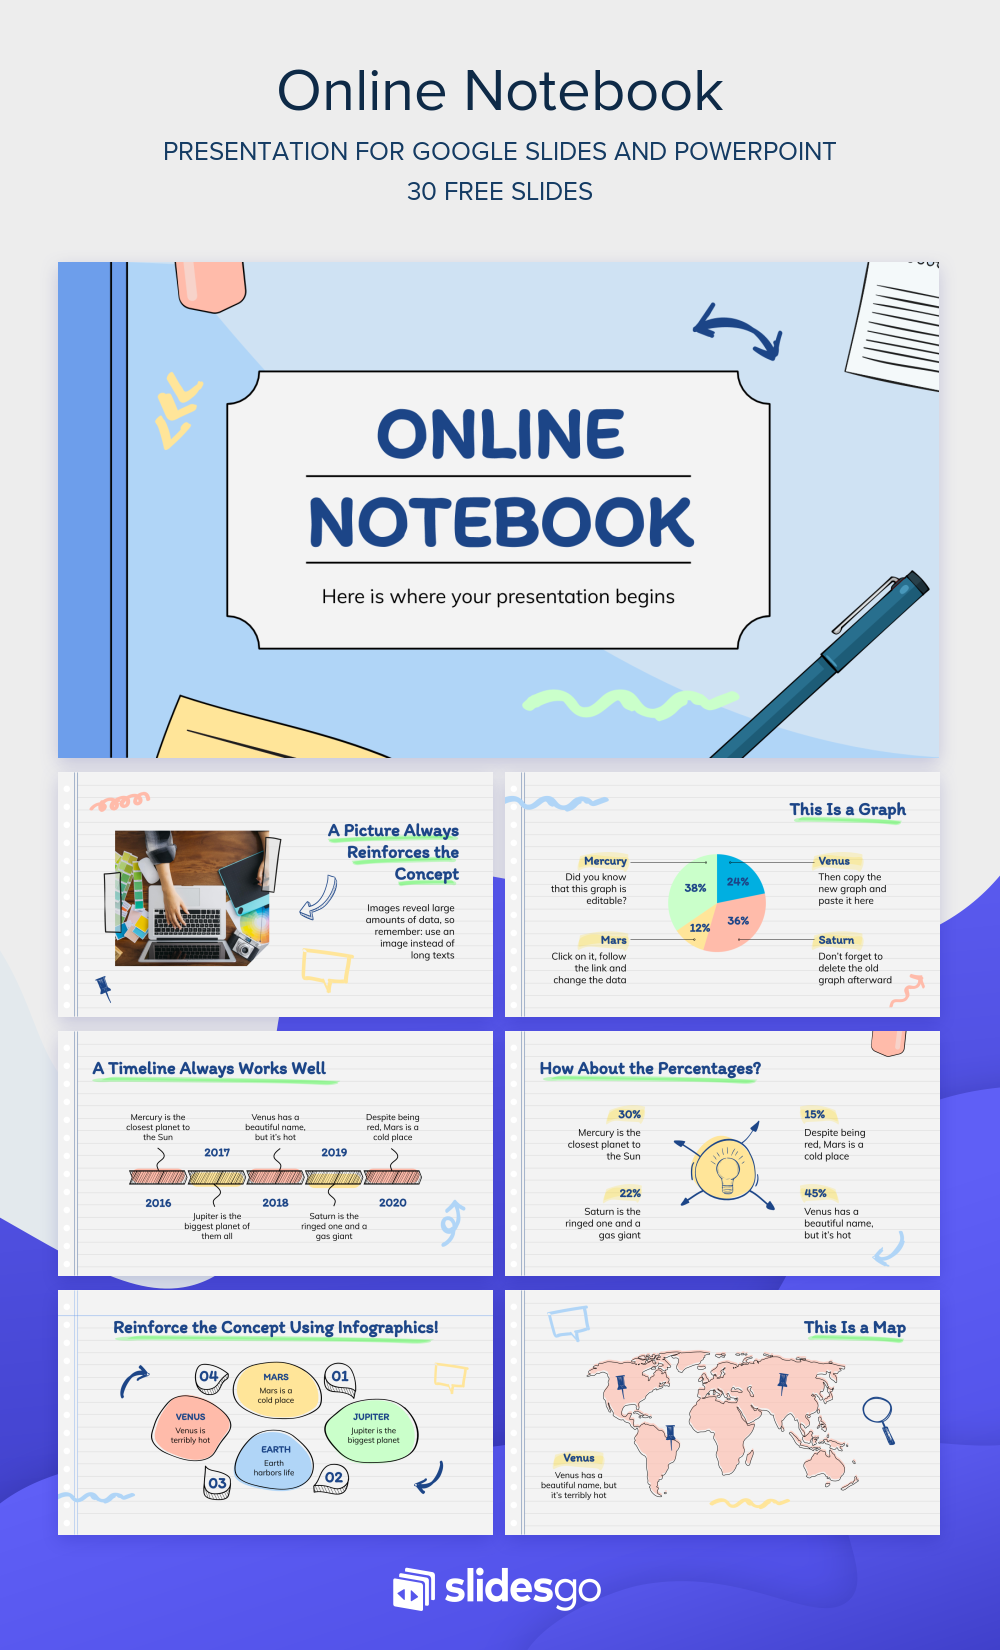 Use this online notebook for your classes! Download it as